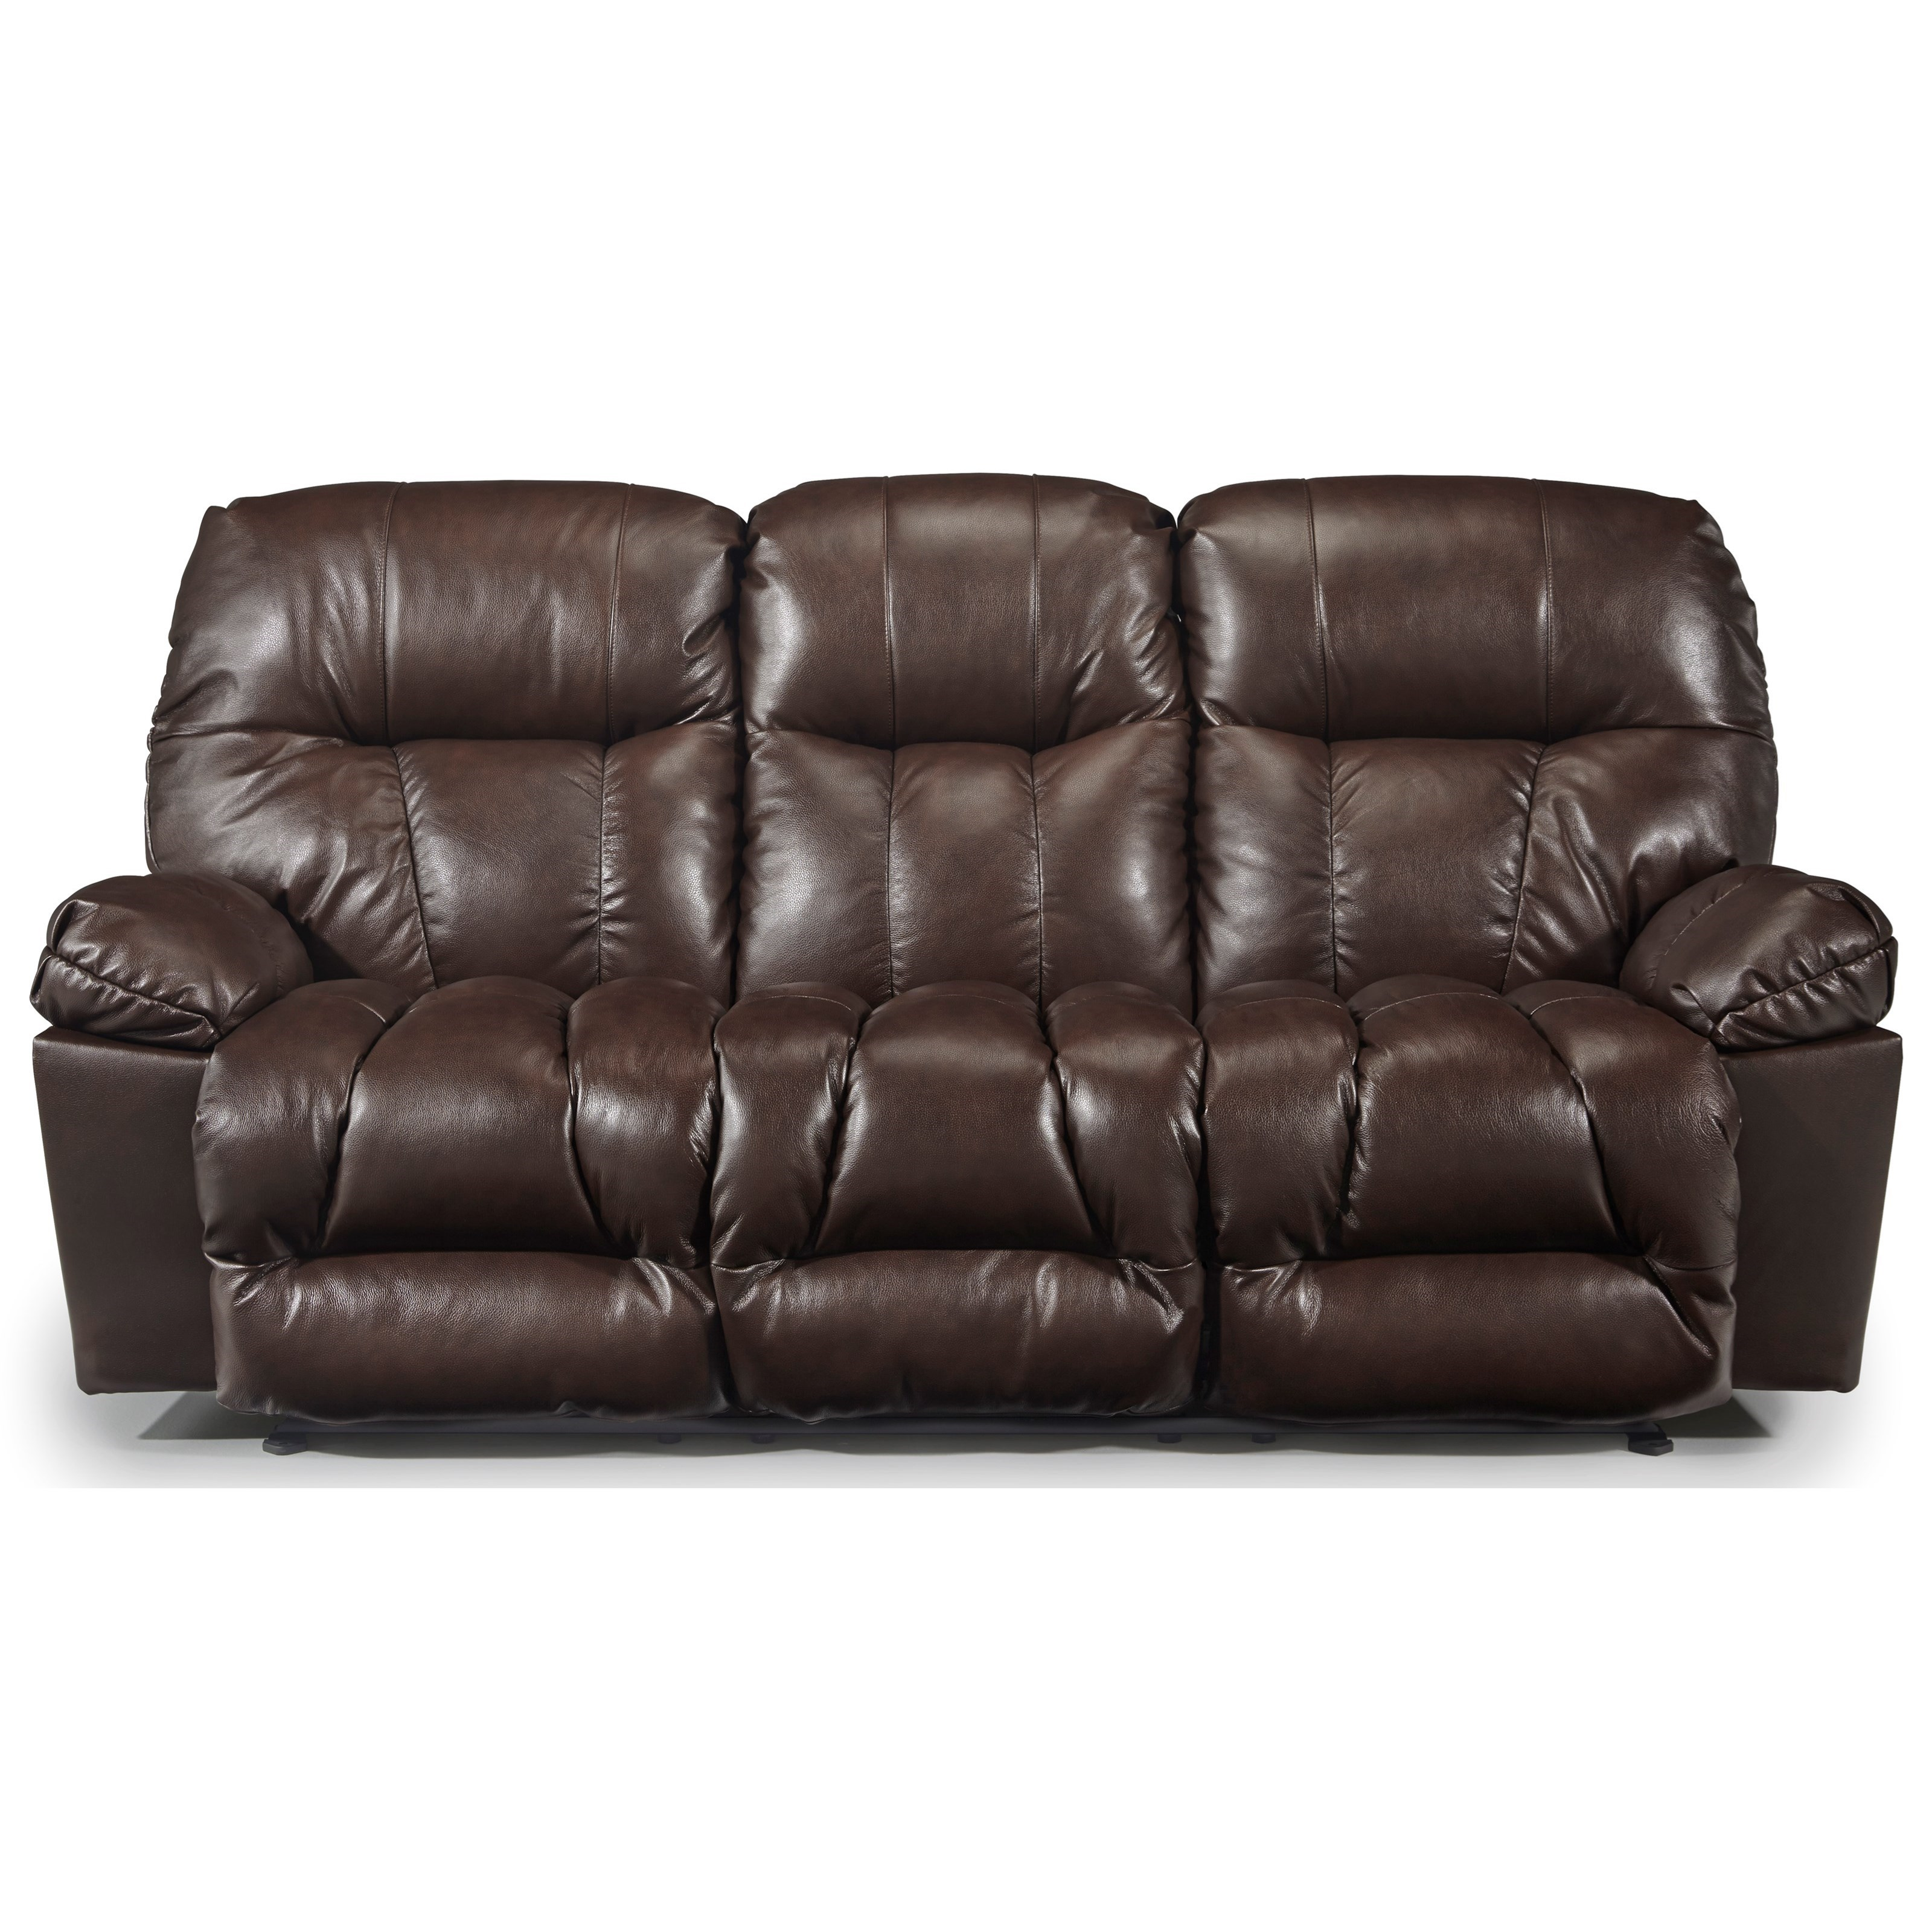 Retreat Reclining Space Saver Sofa by Best Home Furnishings at Baer's Furniture